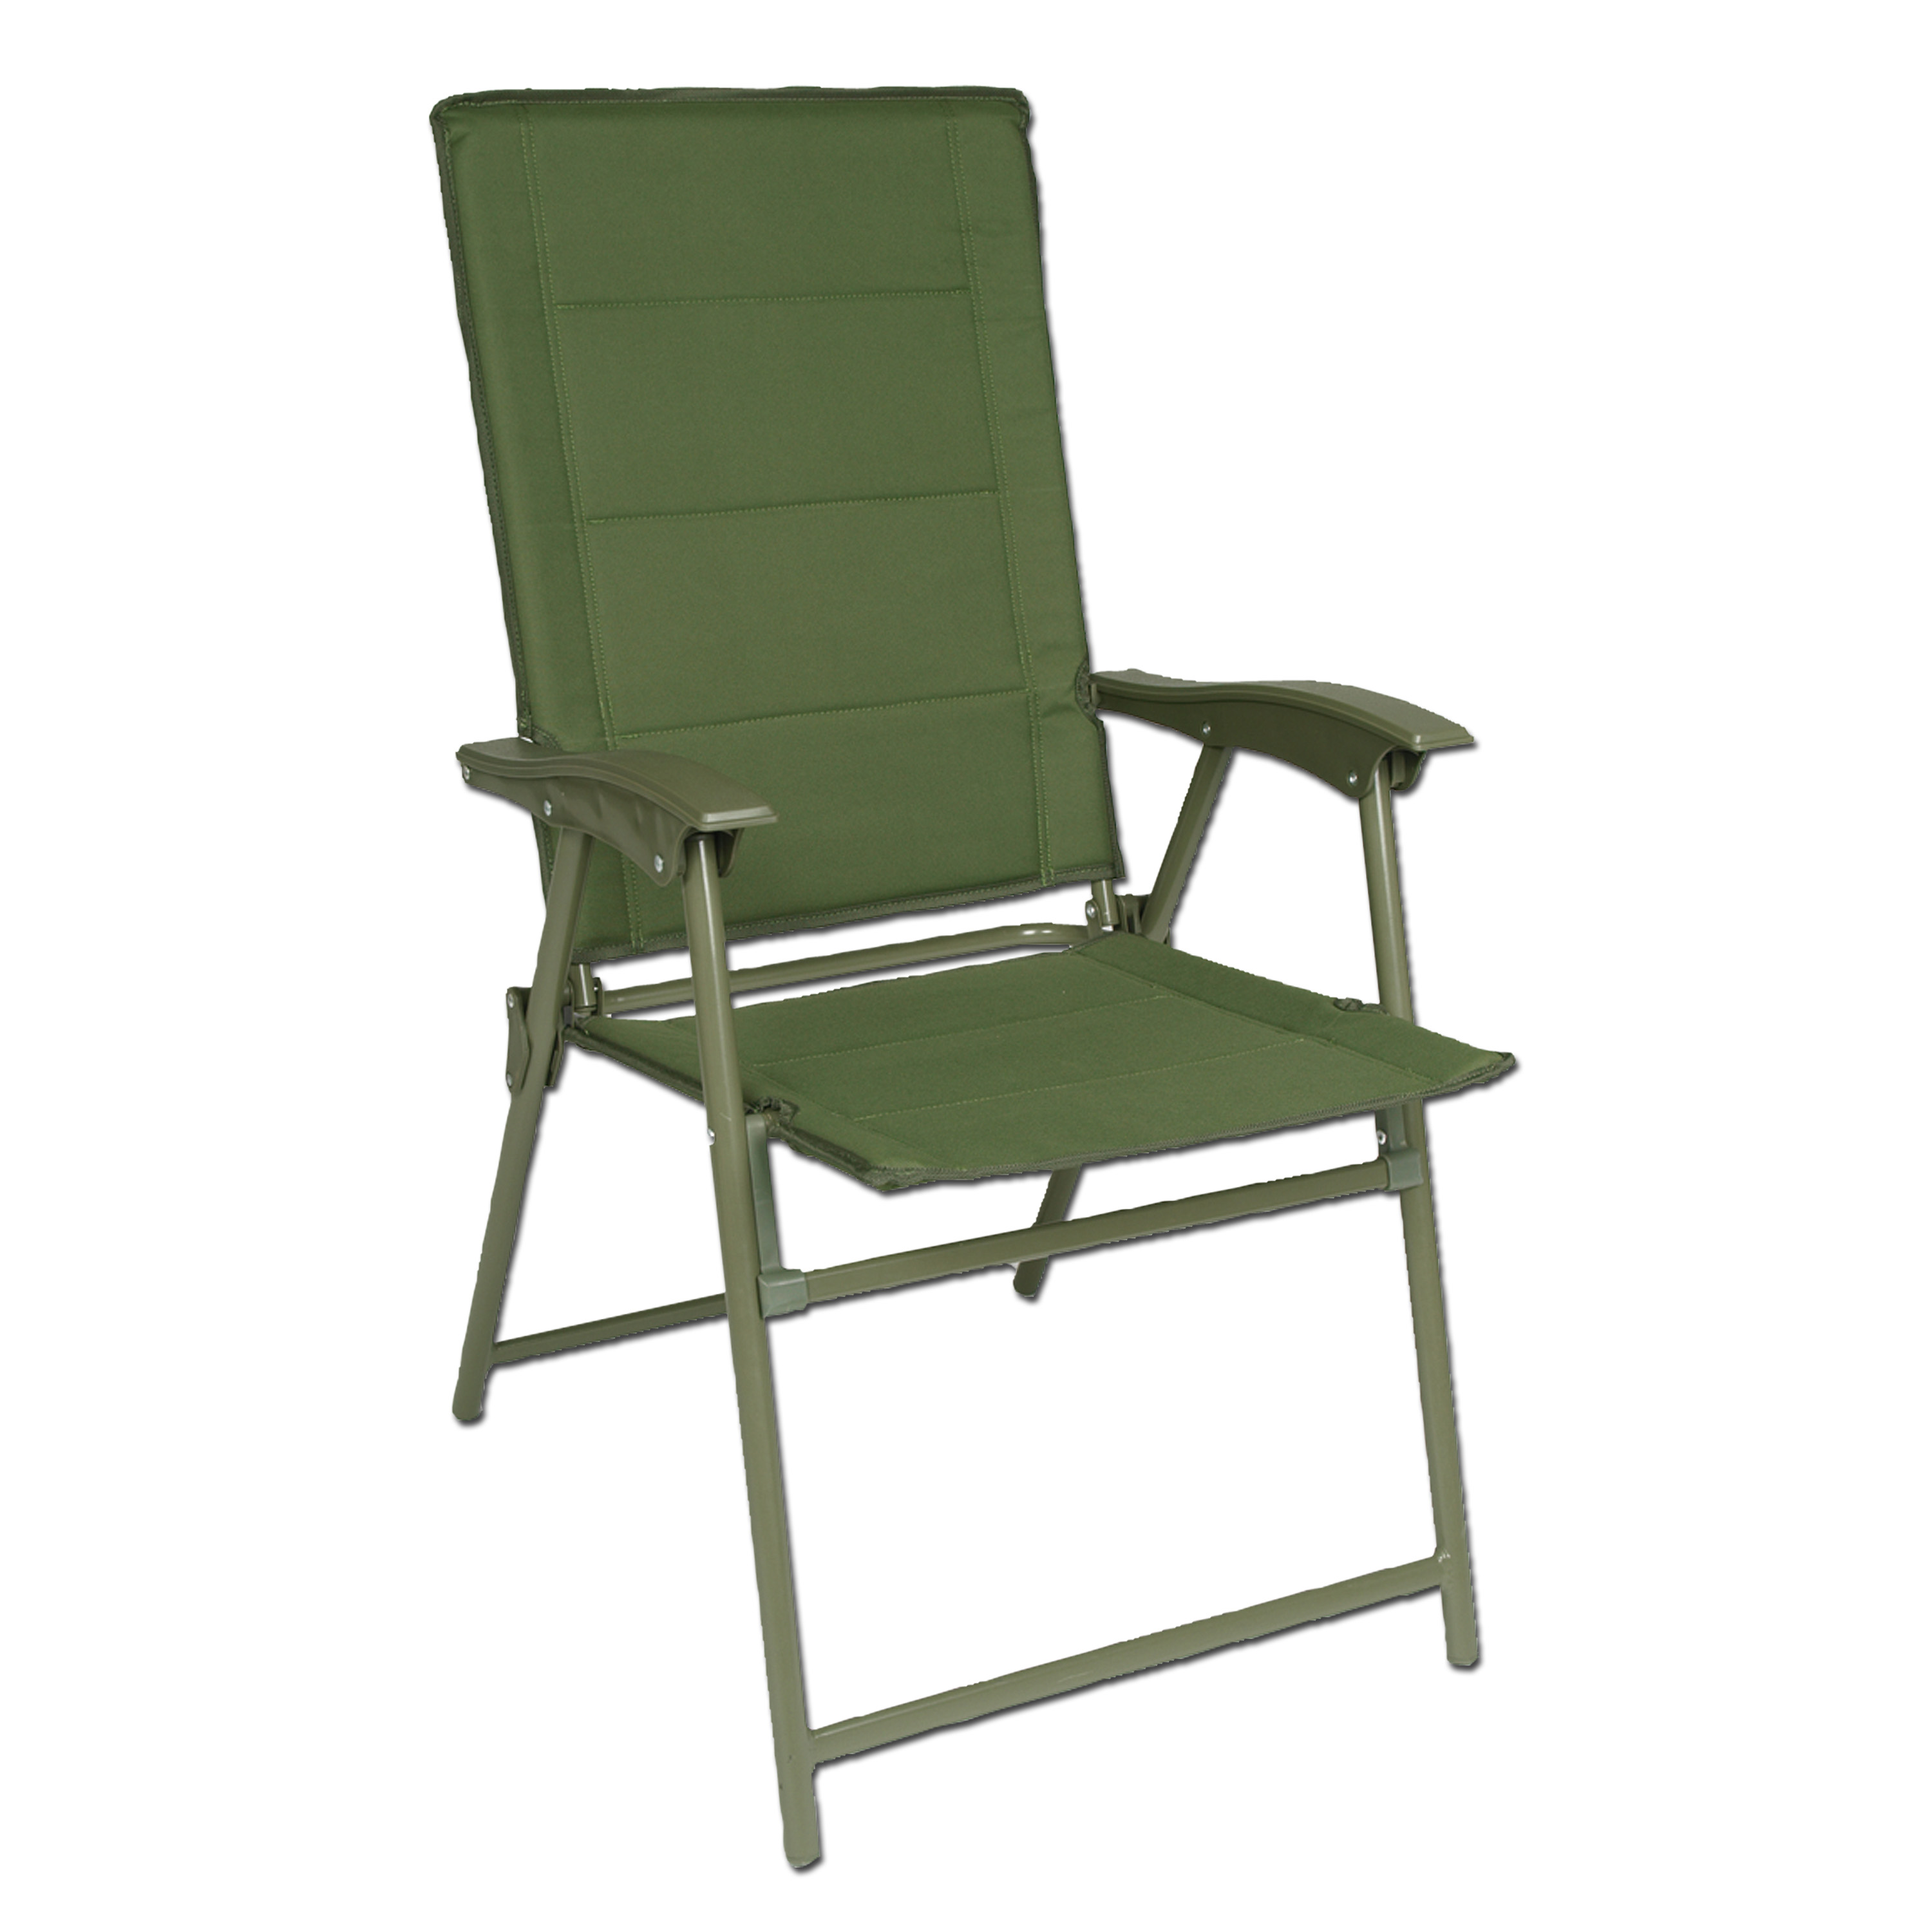 Army Folding Chair with Armrest olive